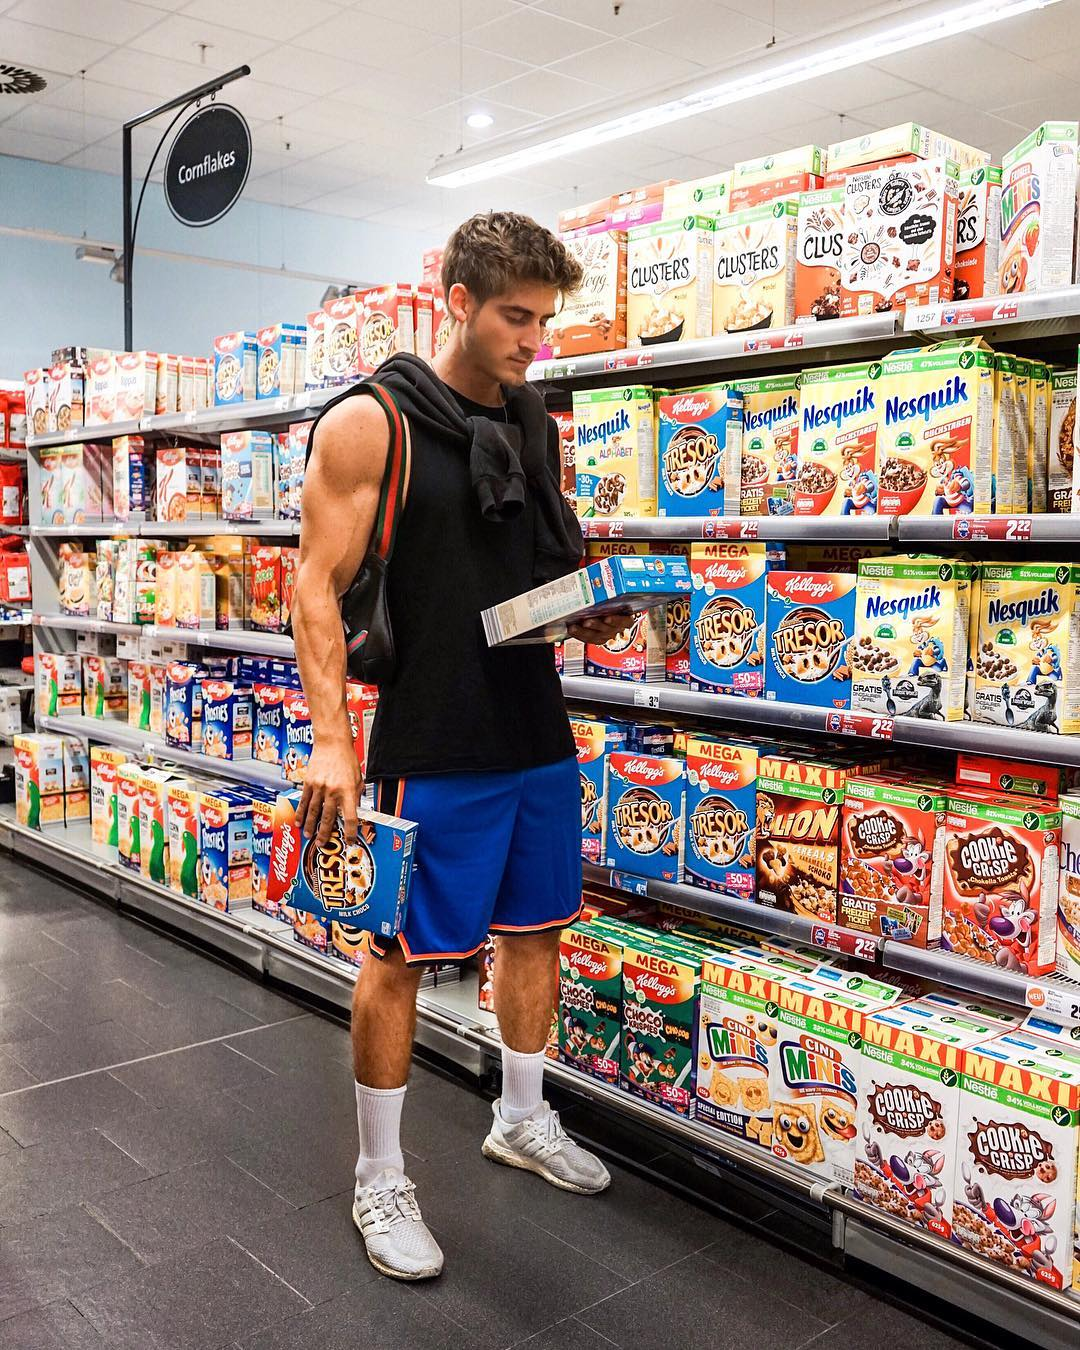 sexy-dumb-jock-cereal-shopping-mall-hot-college-dude-biceps